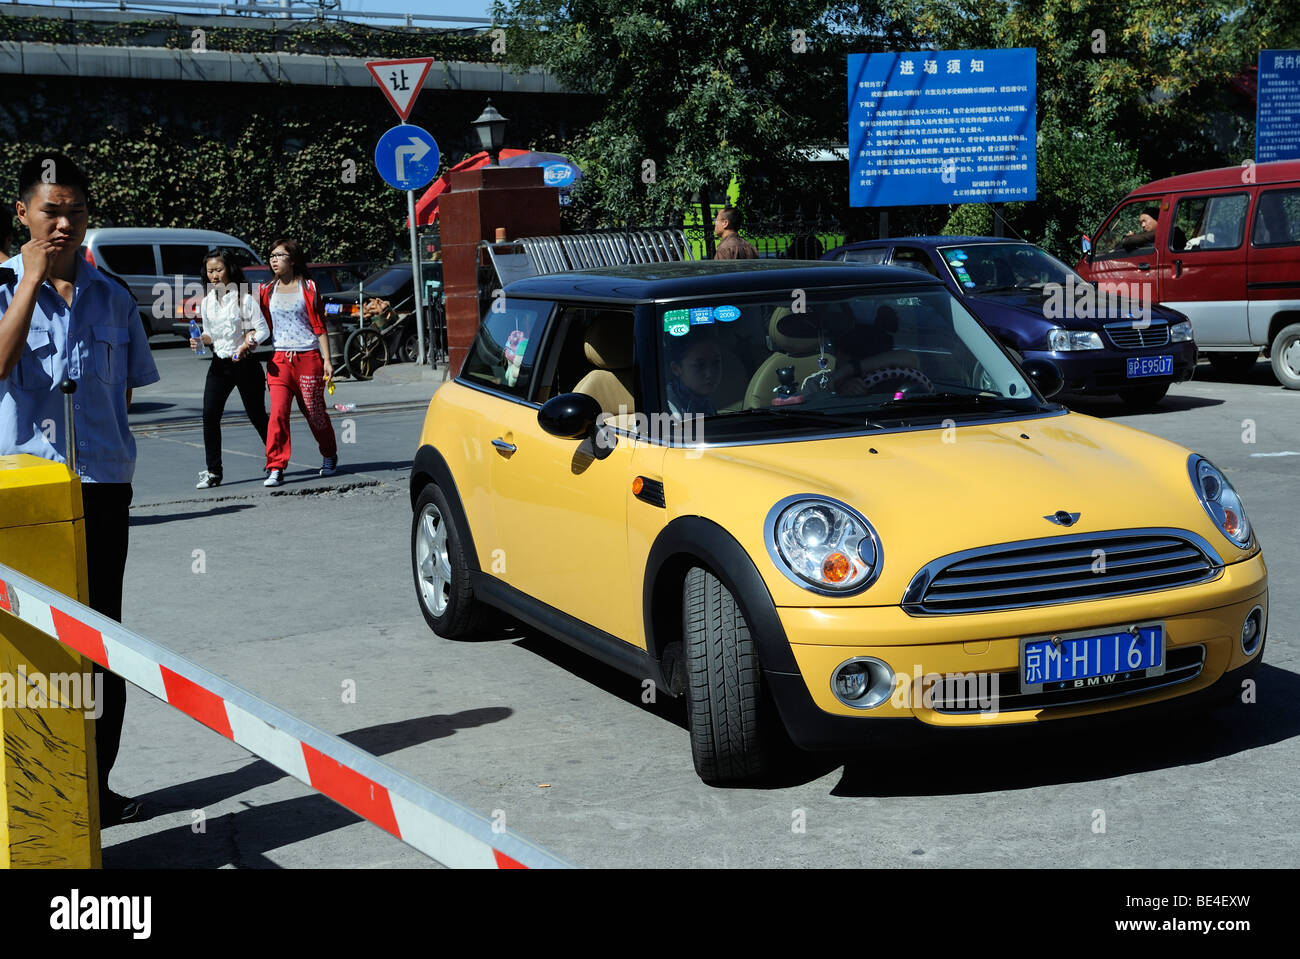 A Mini Cooper in Beijing, China. 21-Sep-2009 - Stock Image